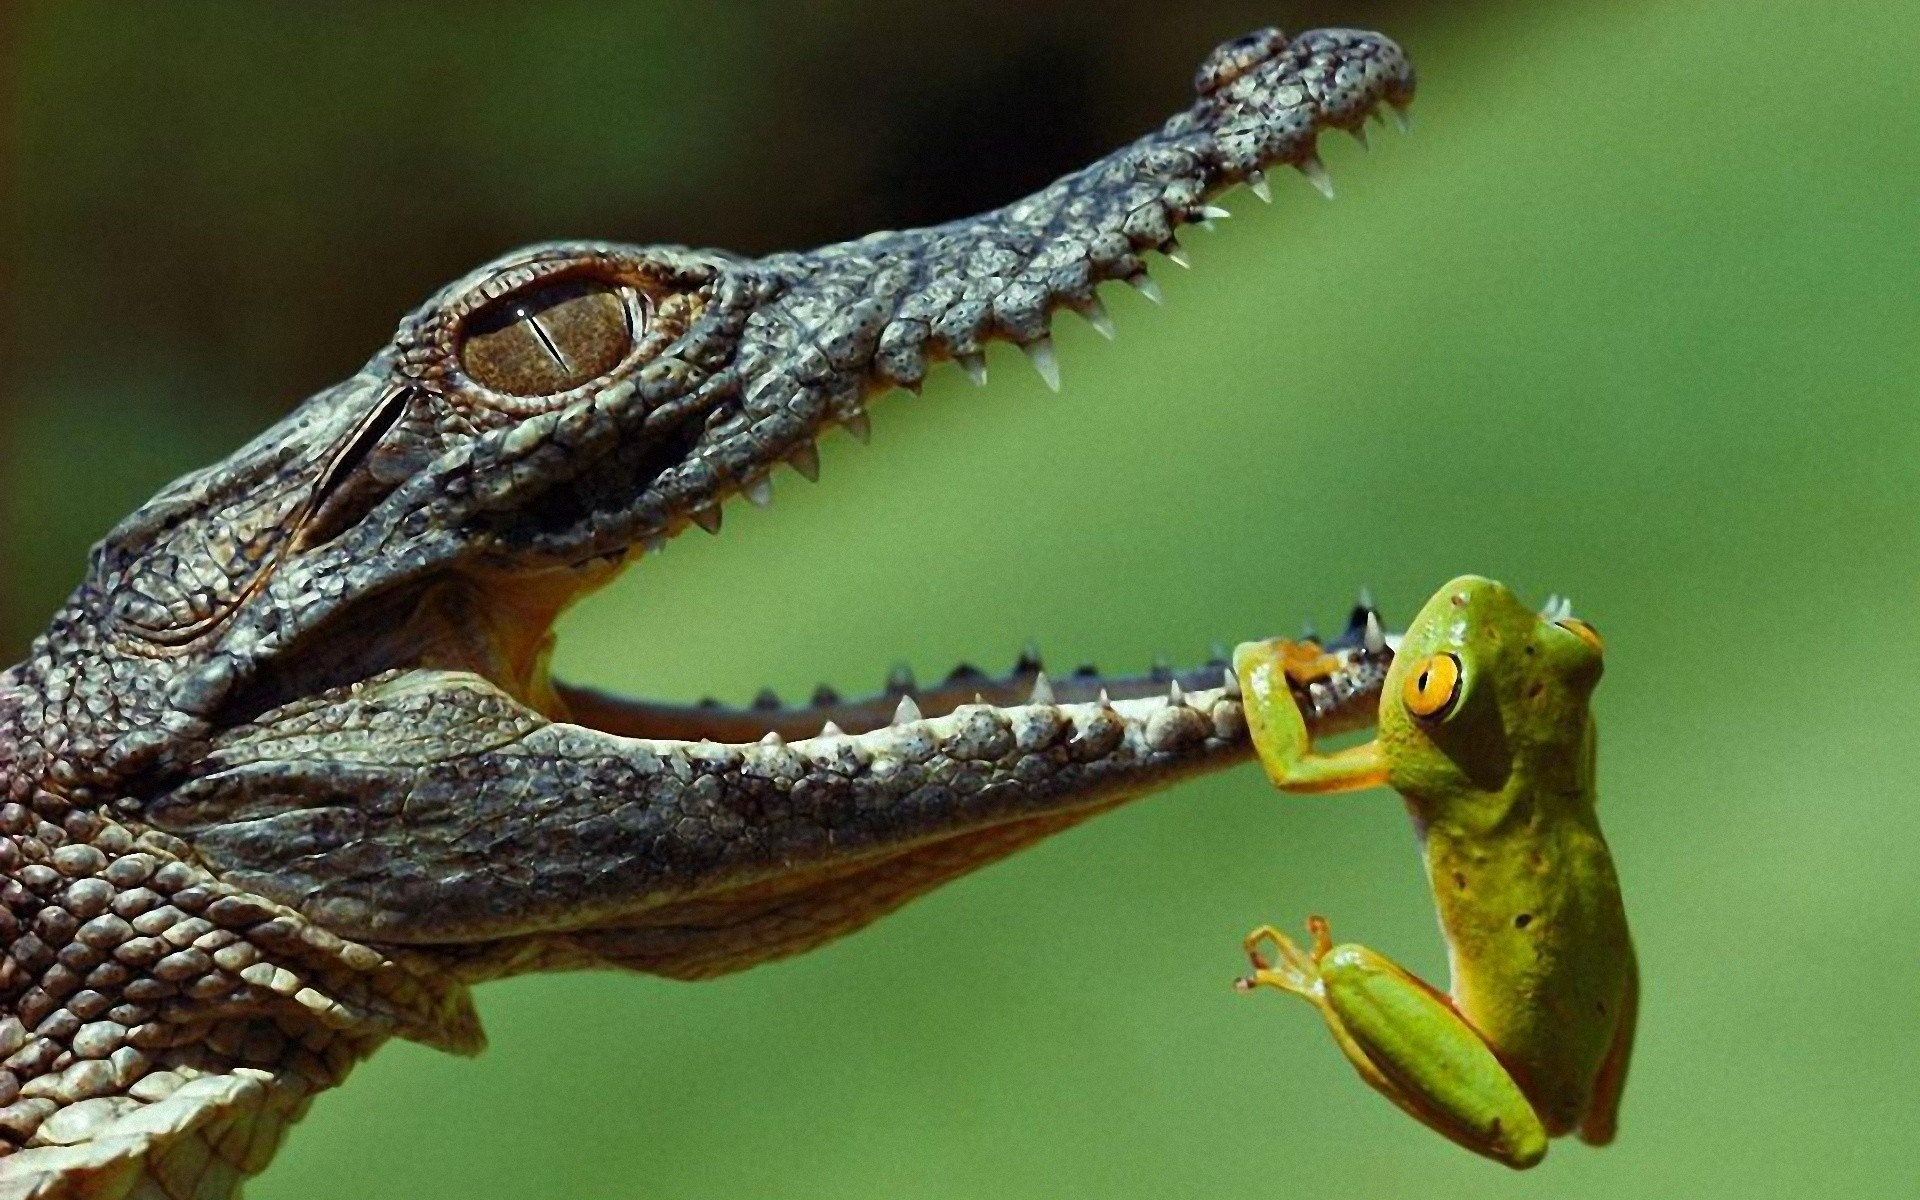 Hanging frogs crocodiles jaws reptiles amphibians